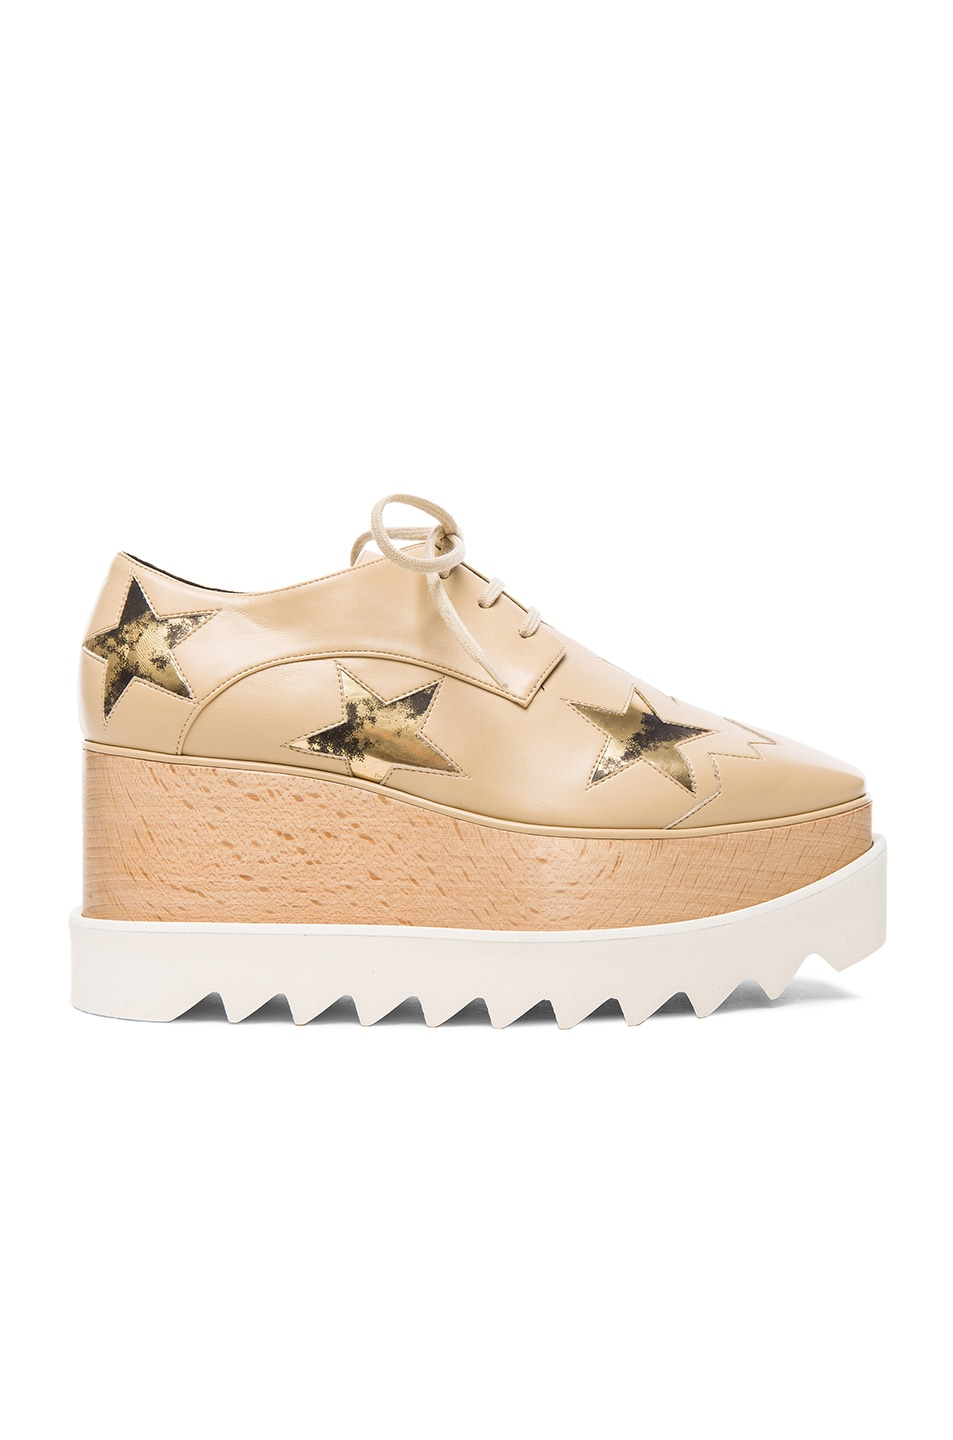 Image 1 of Stella McCartneyElyse Faux Leather Star Platform Wedges in Nude